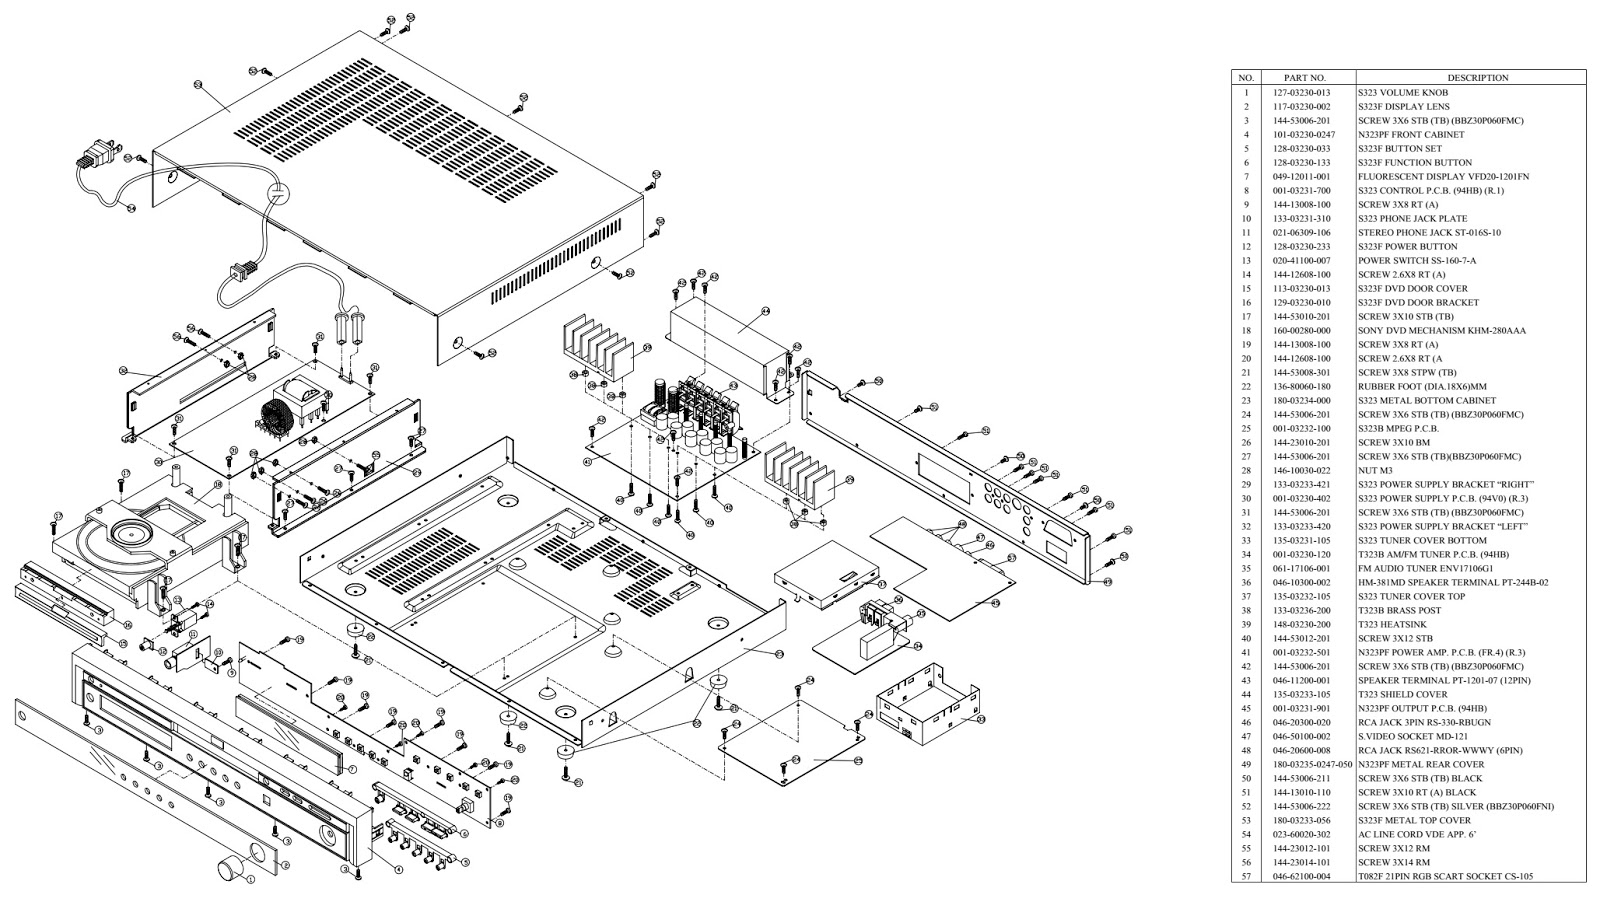 Wiring Diagrams For Home Theater Systems